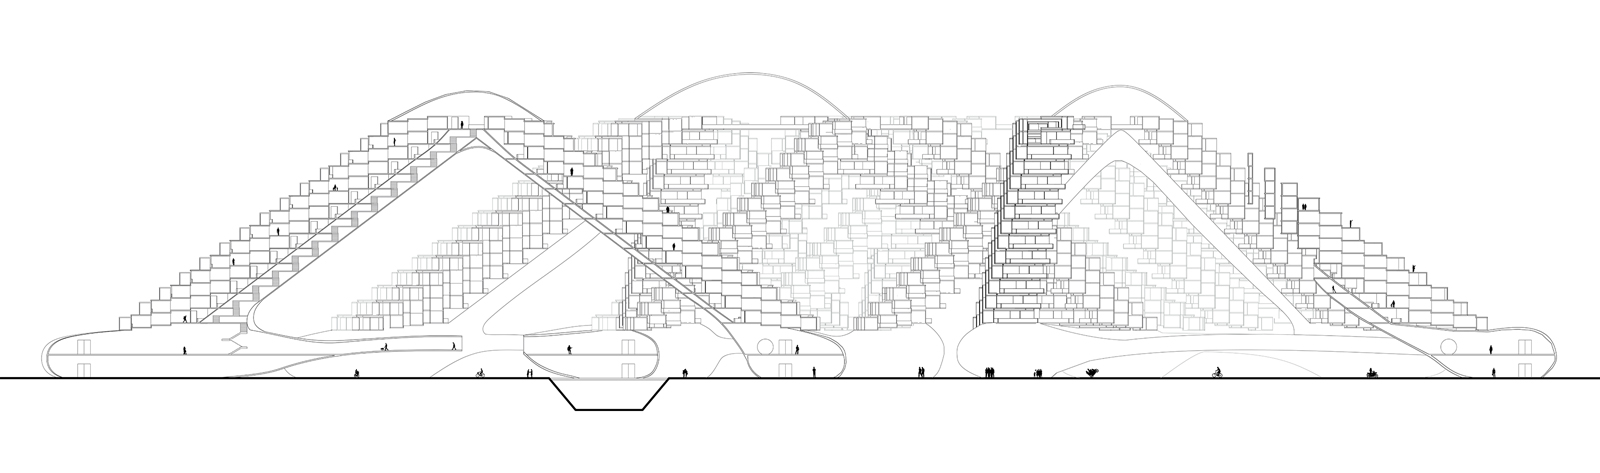 Long section drawing of a grouping of triangulated housing structures along the Phoenix Canal by student Angel Rodriguez